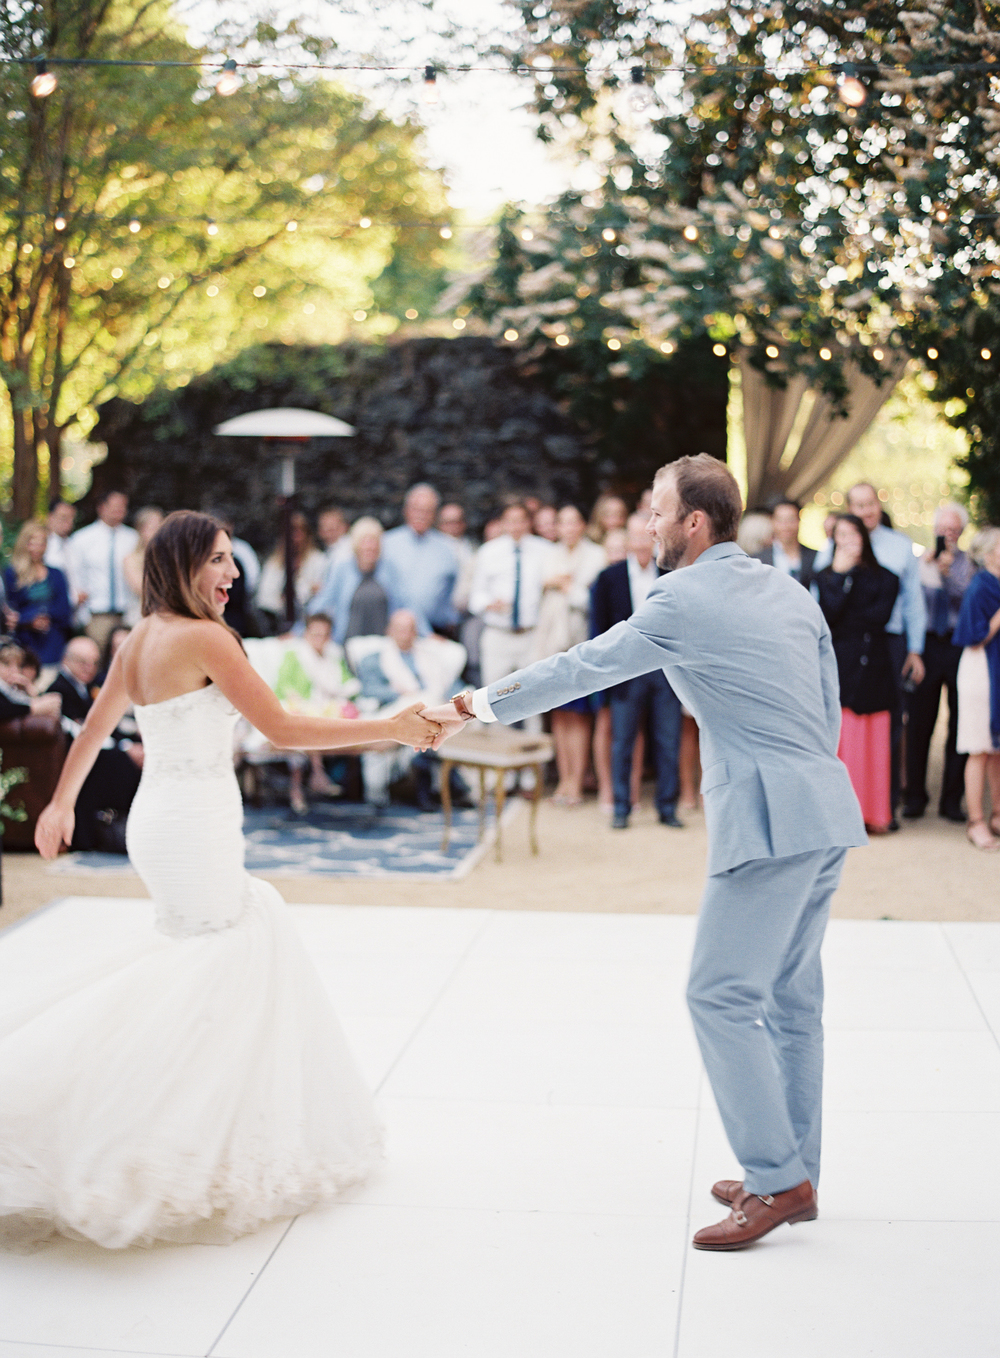 McLoughlin _ First Dance _ 004#F9F4.jpg